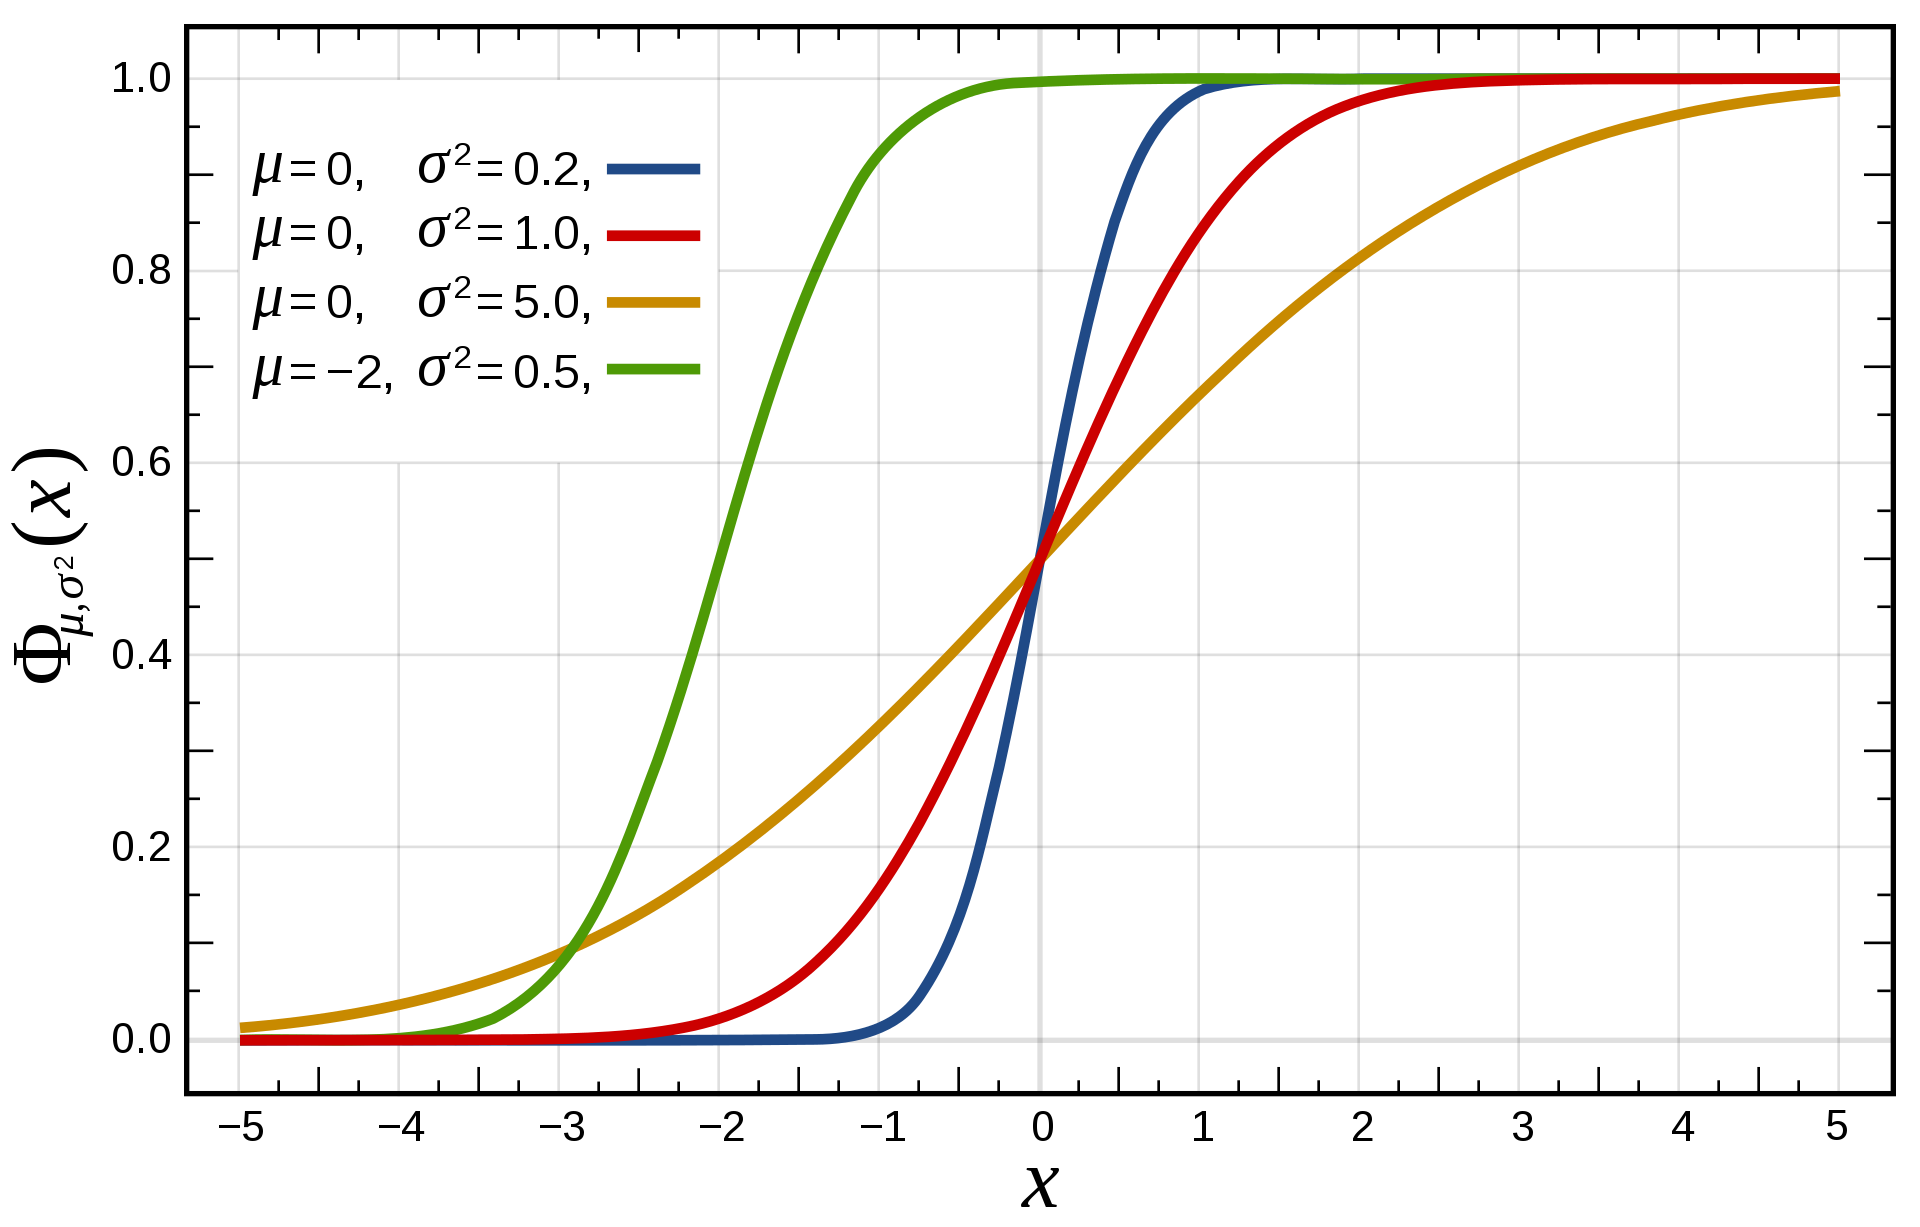 Probability distribution function of the Gaussian distribution. Source: Wikipedia (https://en.wikipedia.org/wiki/Normal_distribution#/media/File:Normal_Distribution_CDF.svg)